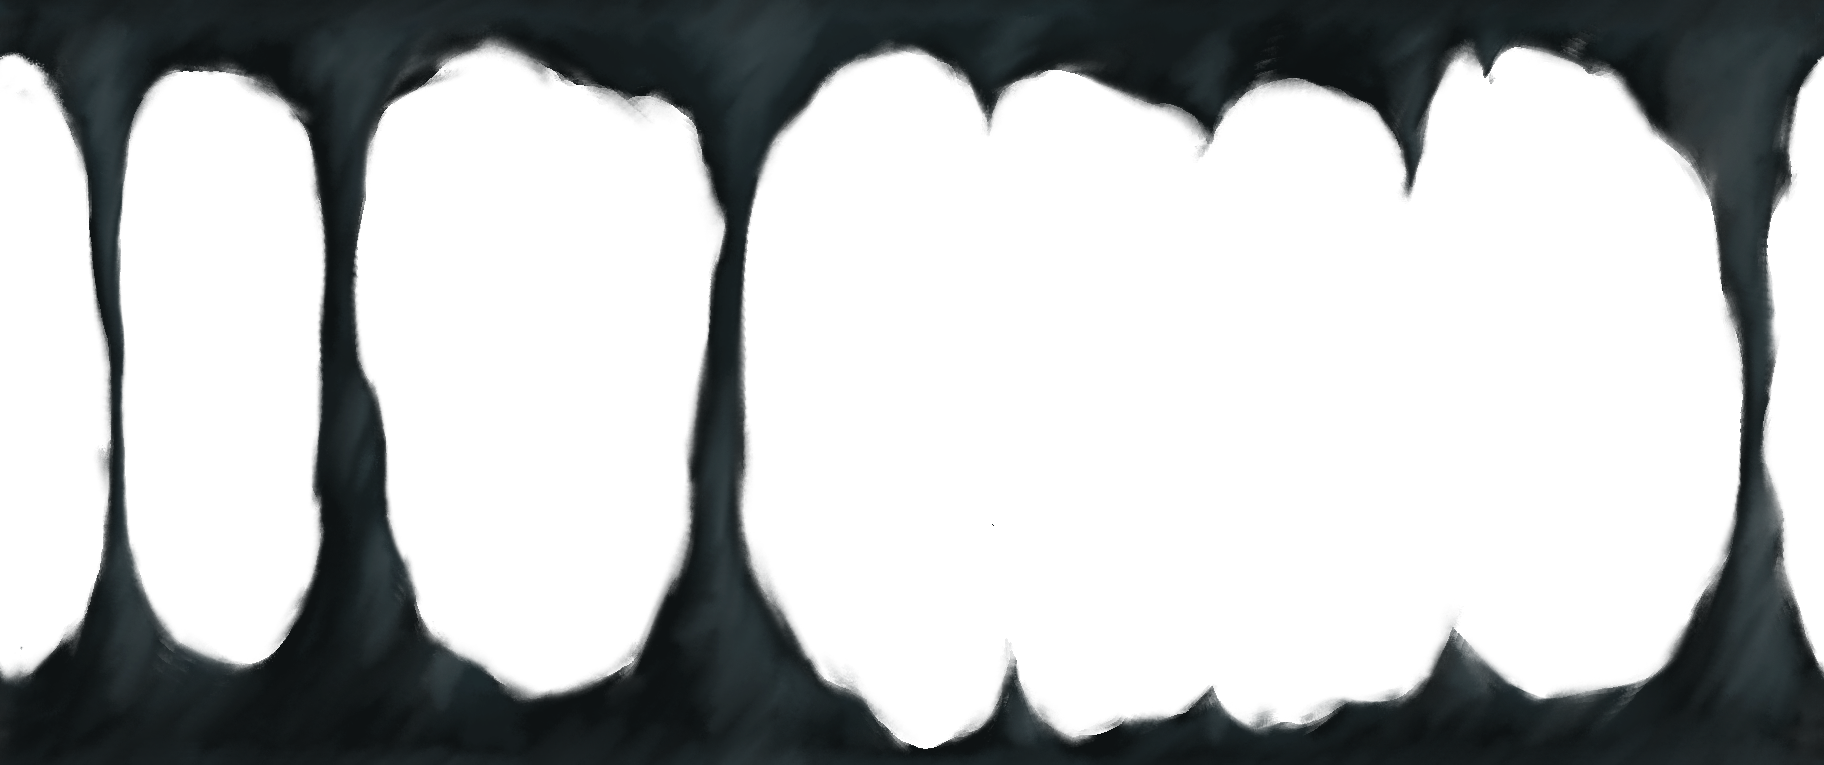 Darkcave-middle.png